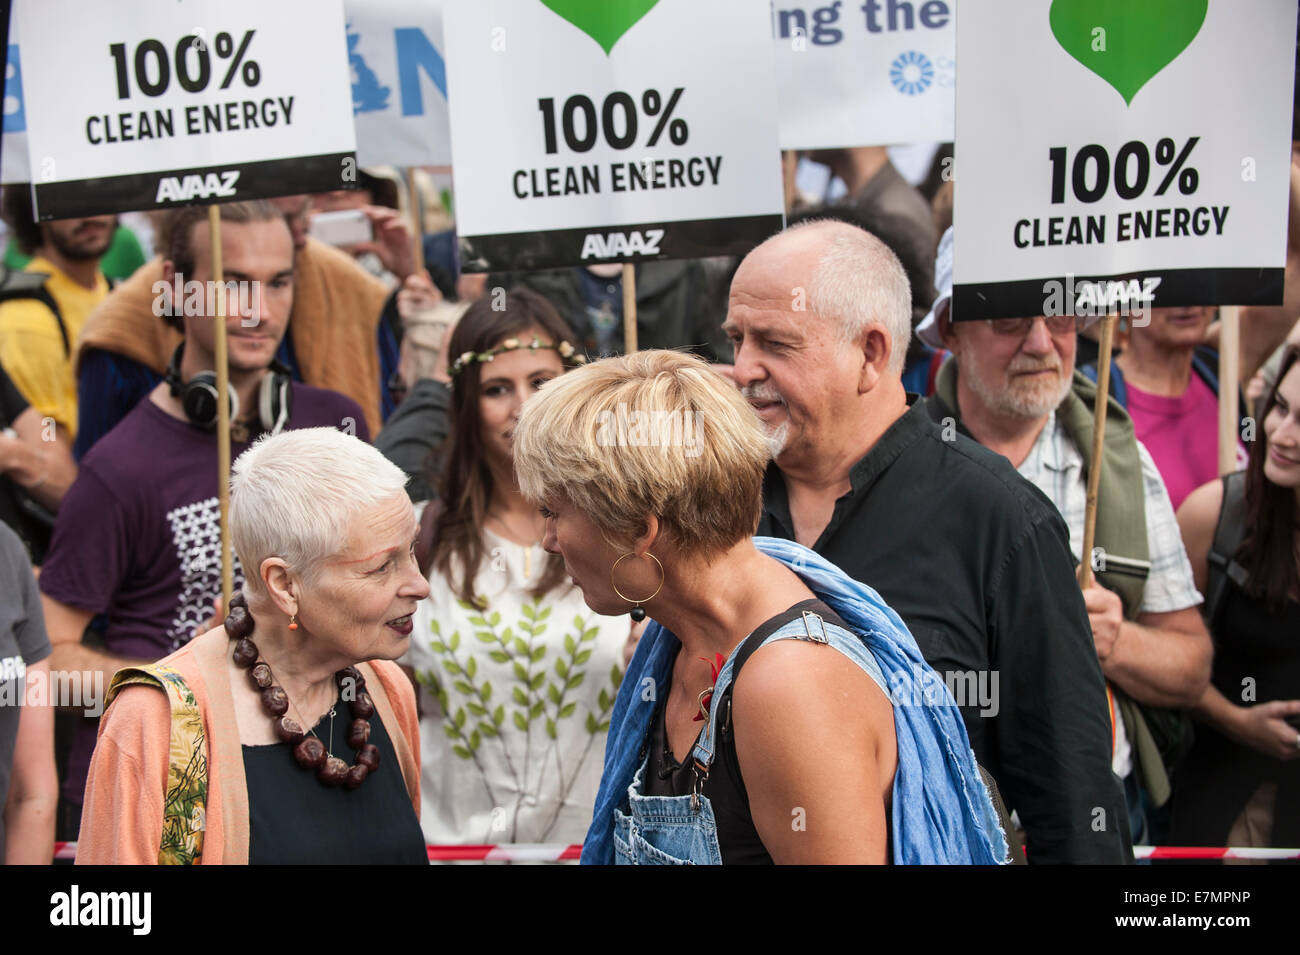 London, UK. 21st Sep, 2014. Vivienne Westwood talks to Emma Thompson with Peter Gabriel behind at the Climate Change - Stock Image